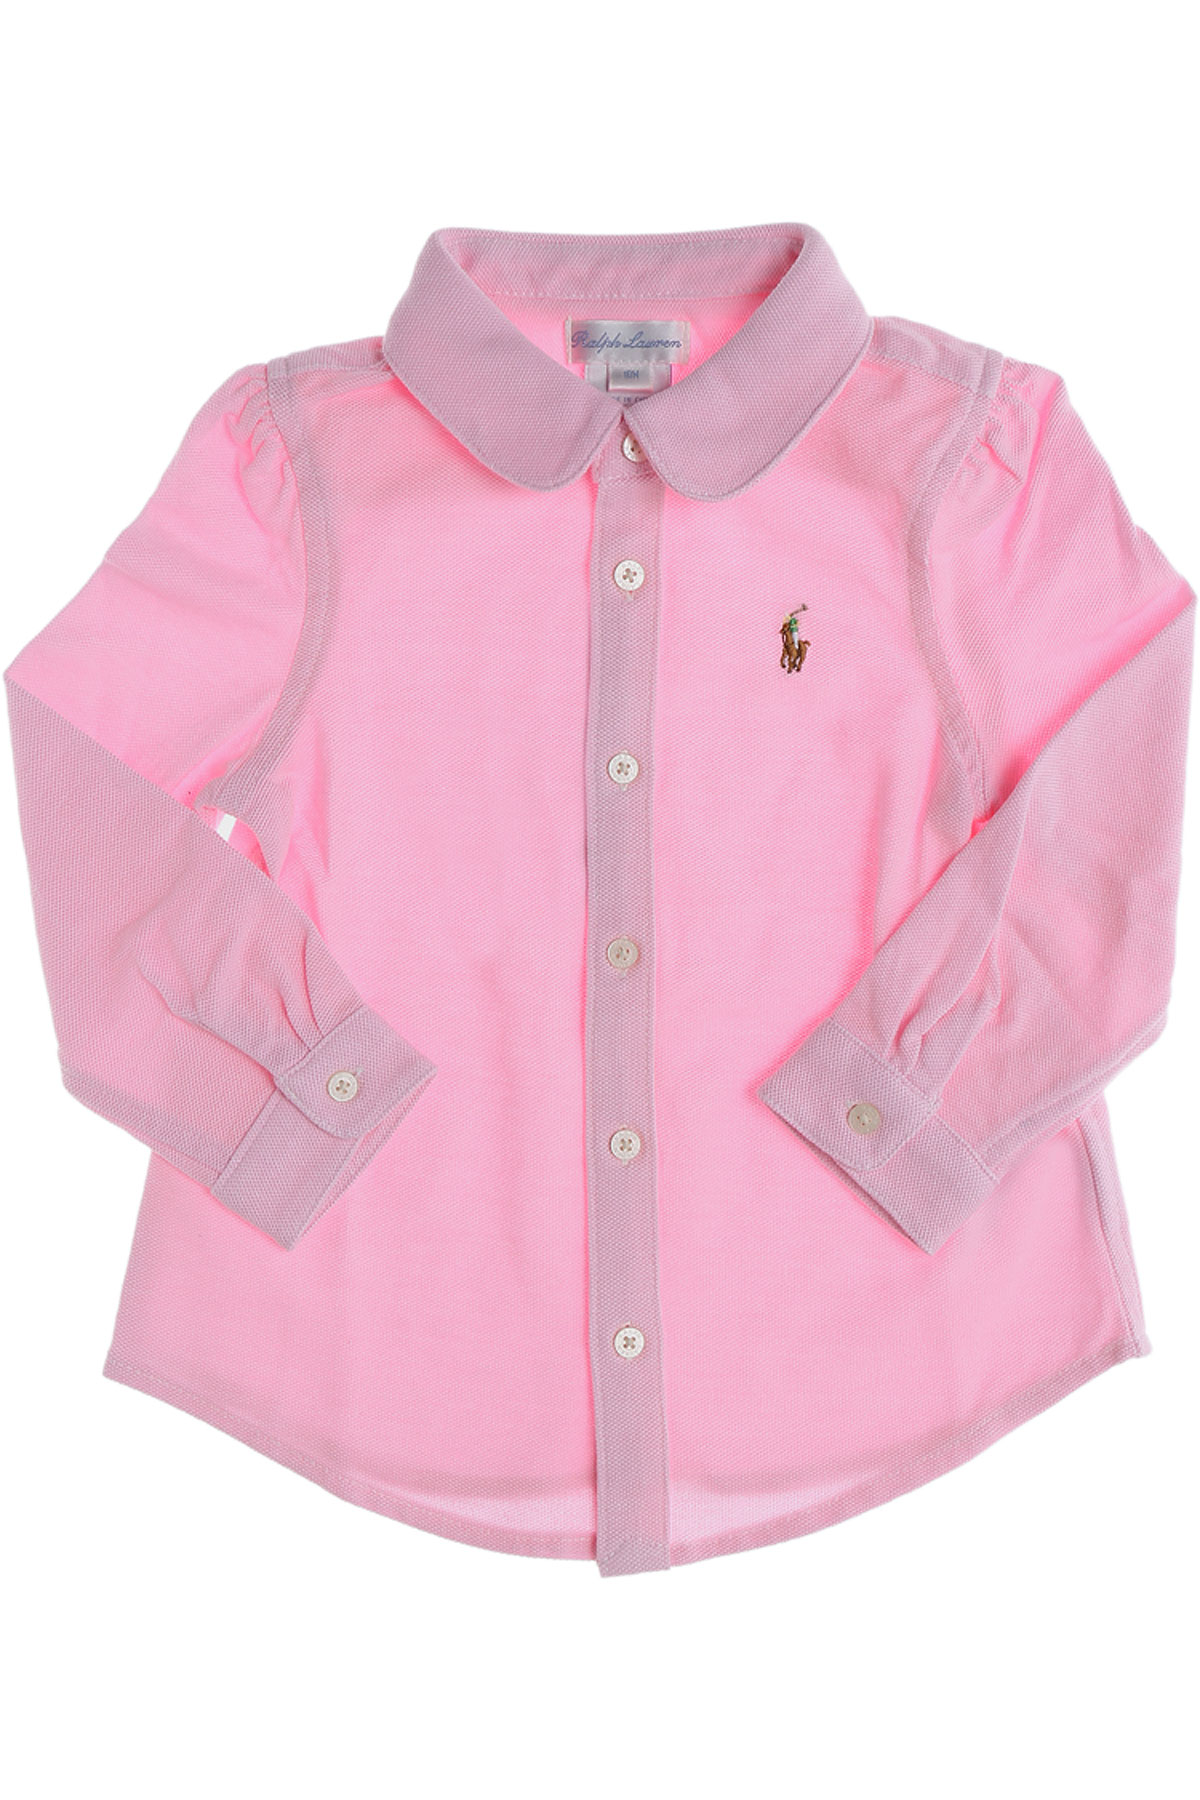 Baby Girl Clothing Ralph Lauren, Style Code 396F6-396F6-A671E